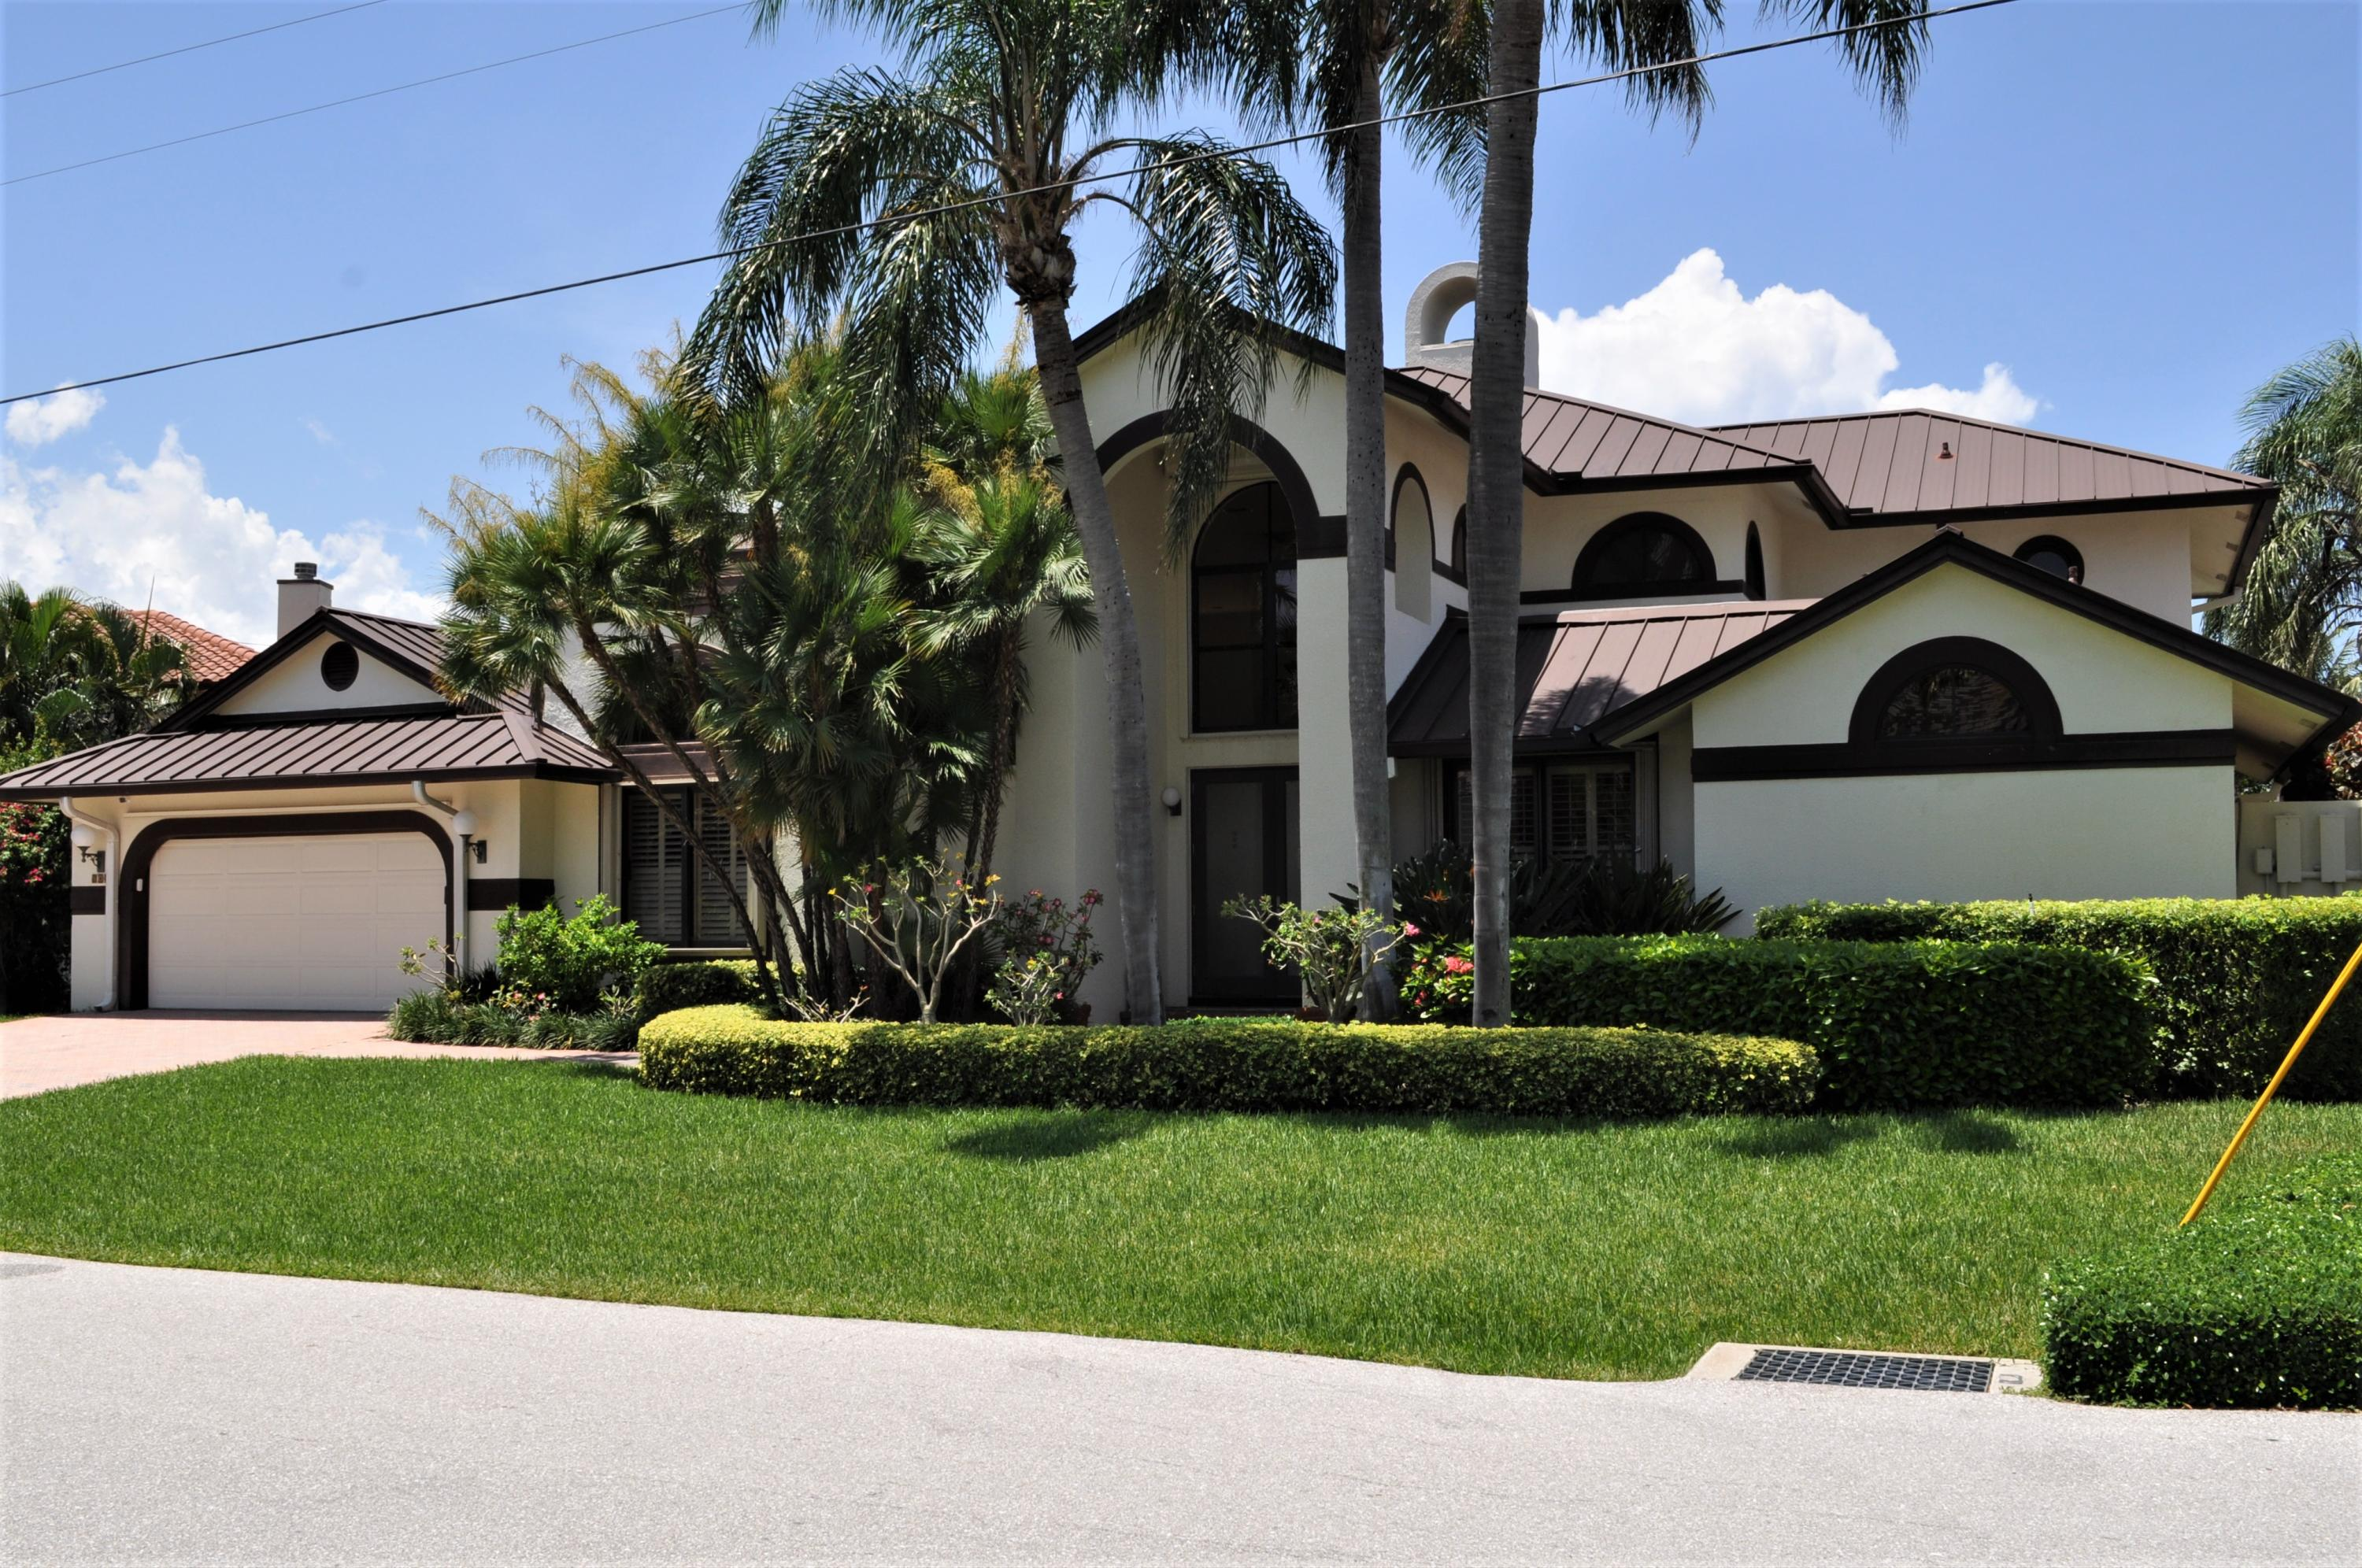 image #1 of property, 4230